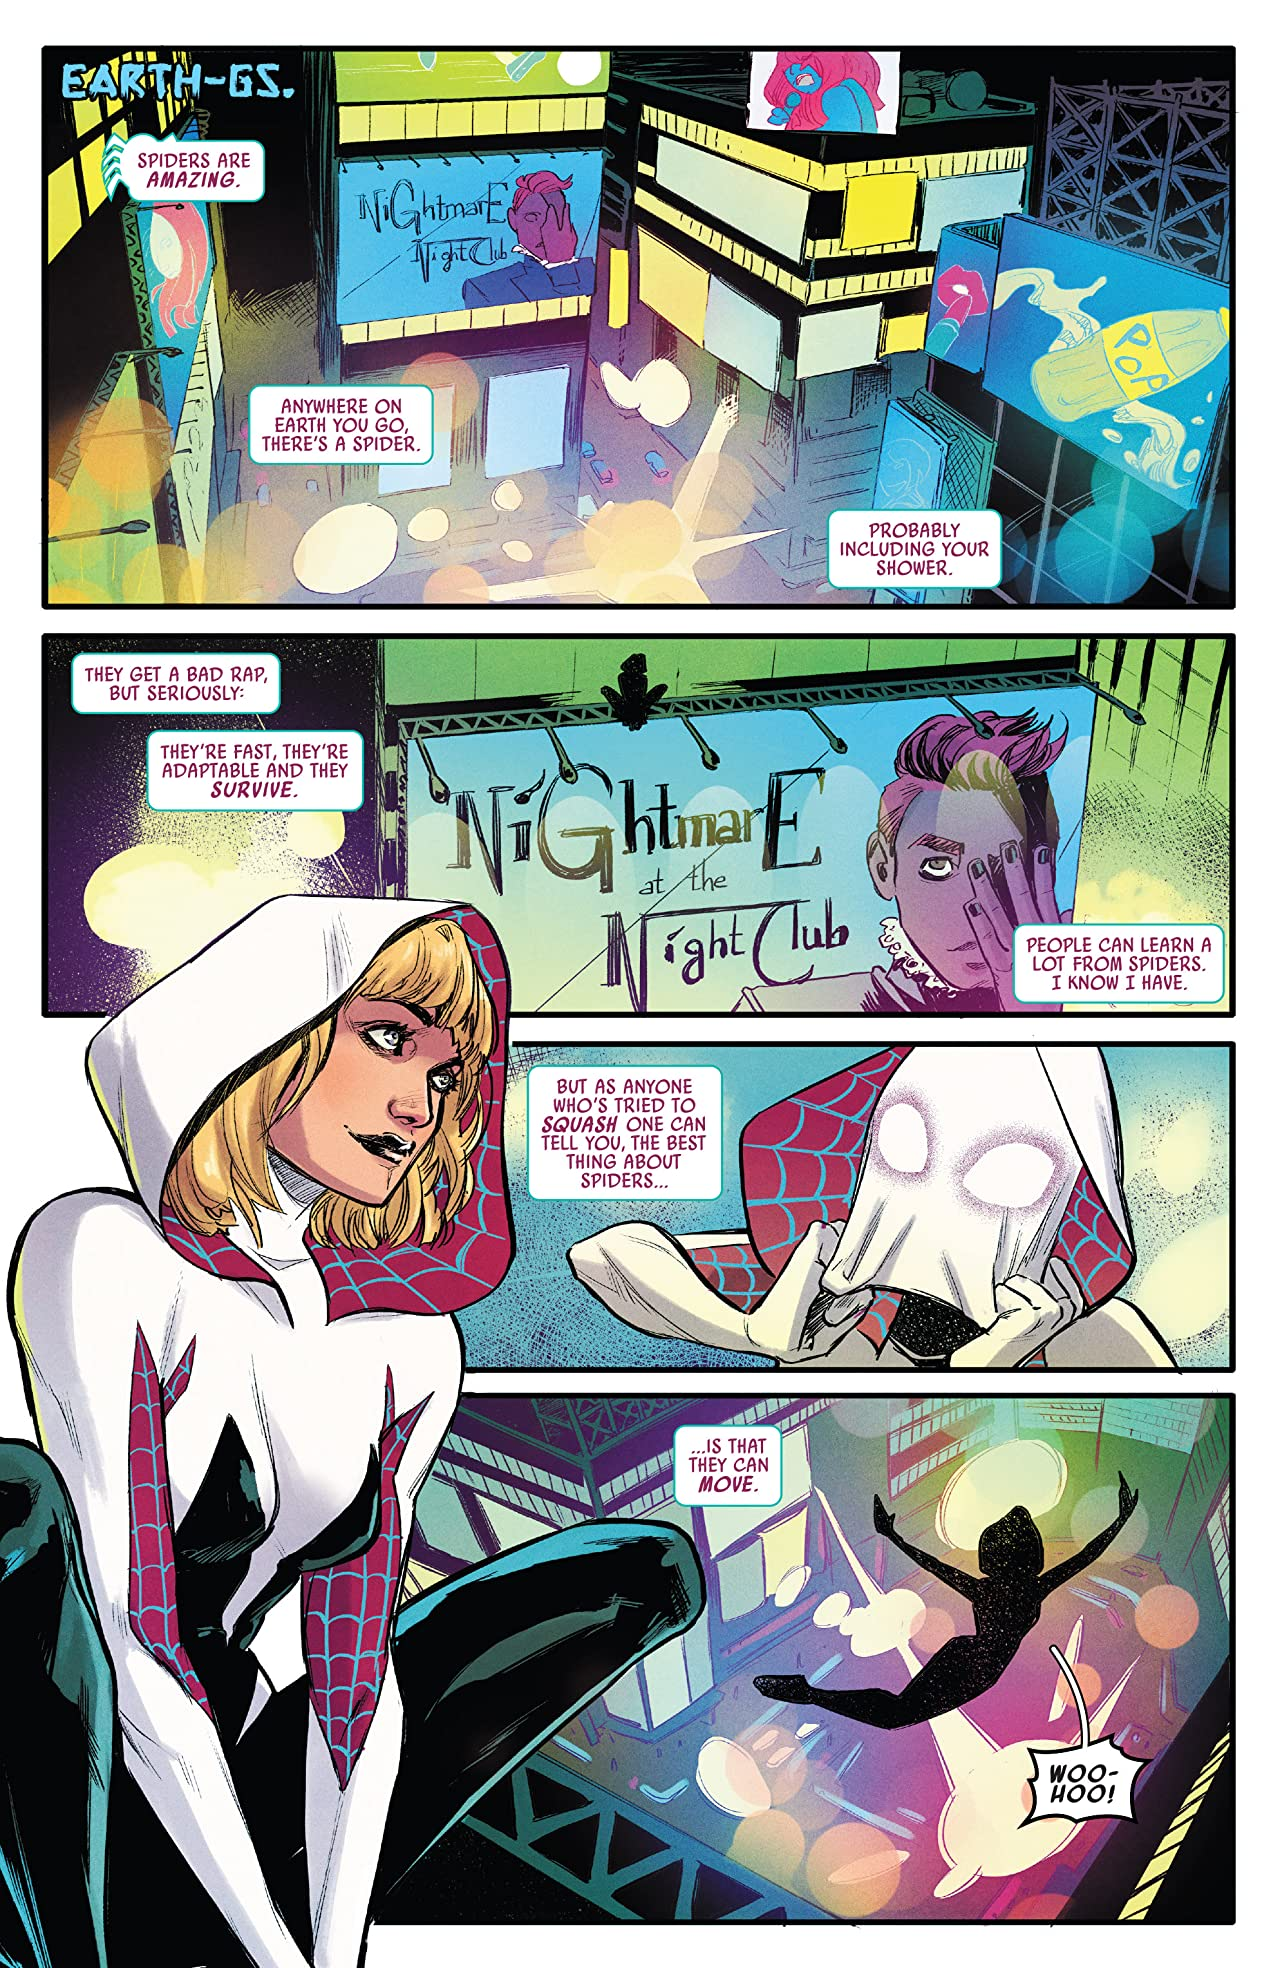 Spider-Gwen: Ghost-Spider Vol. 1: Spider-Geddon